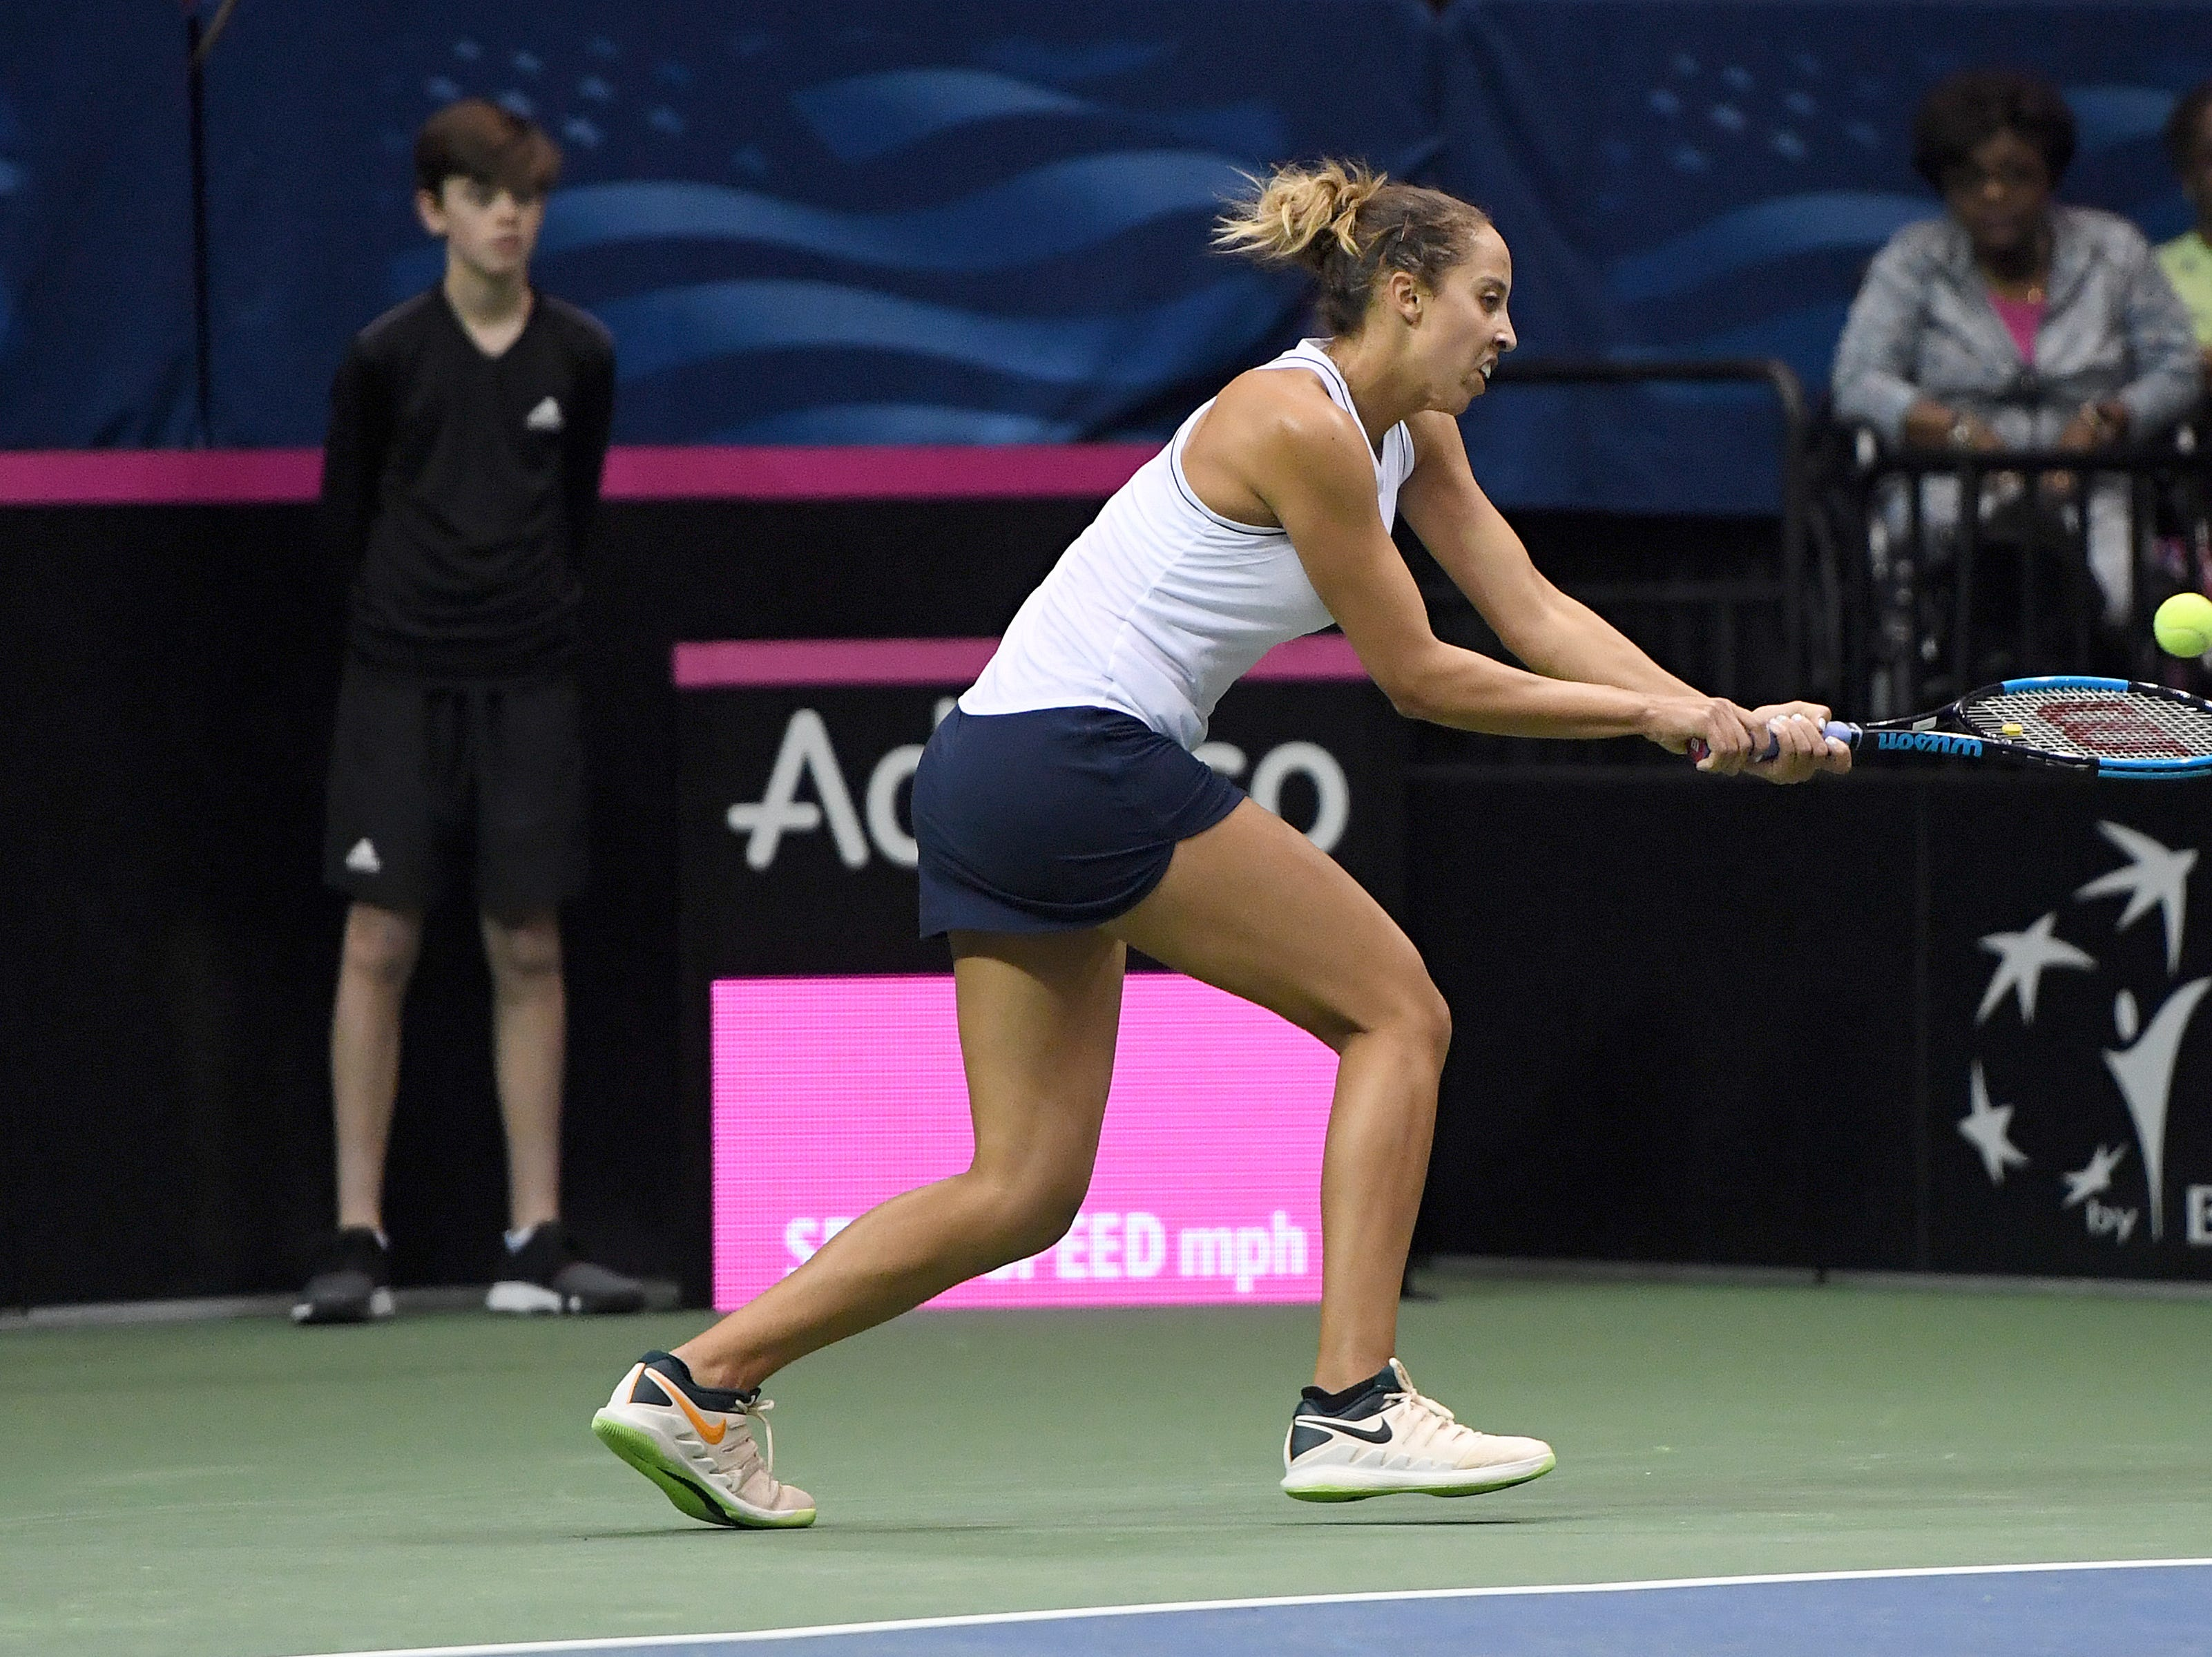 The United States took on Australia in tennis on day two of the first round of the Fed Cup at the U.S. Cellular Center on Feb. 10, 2019.